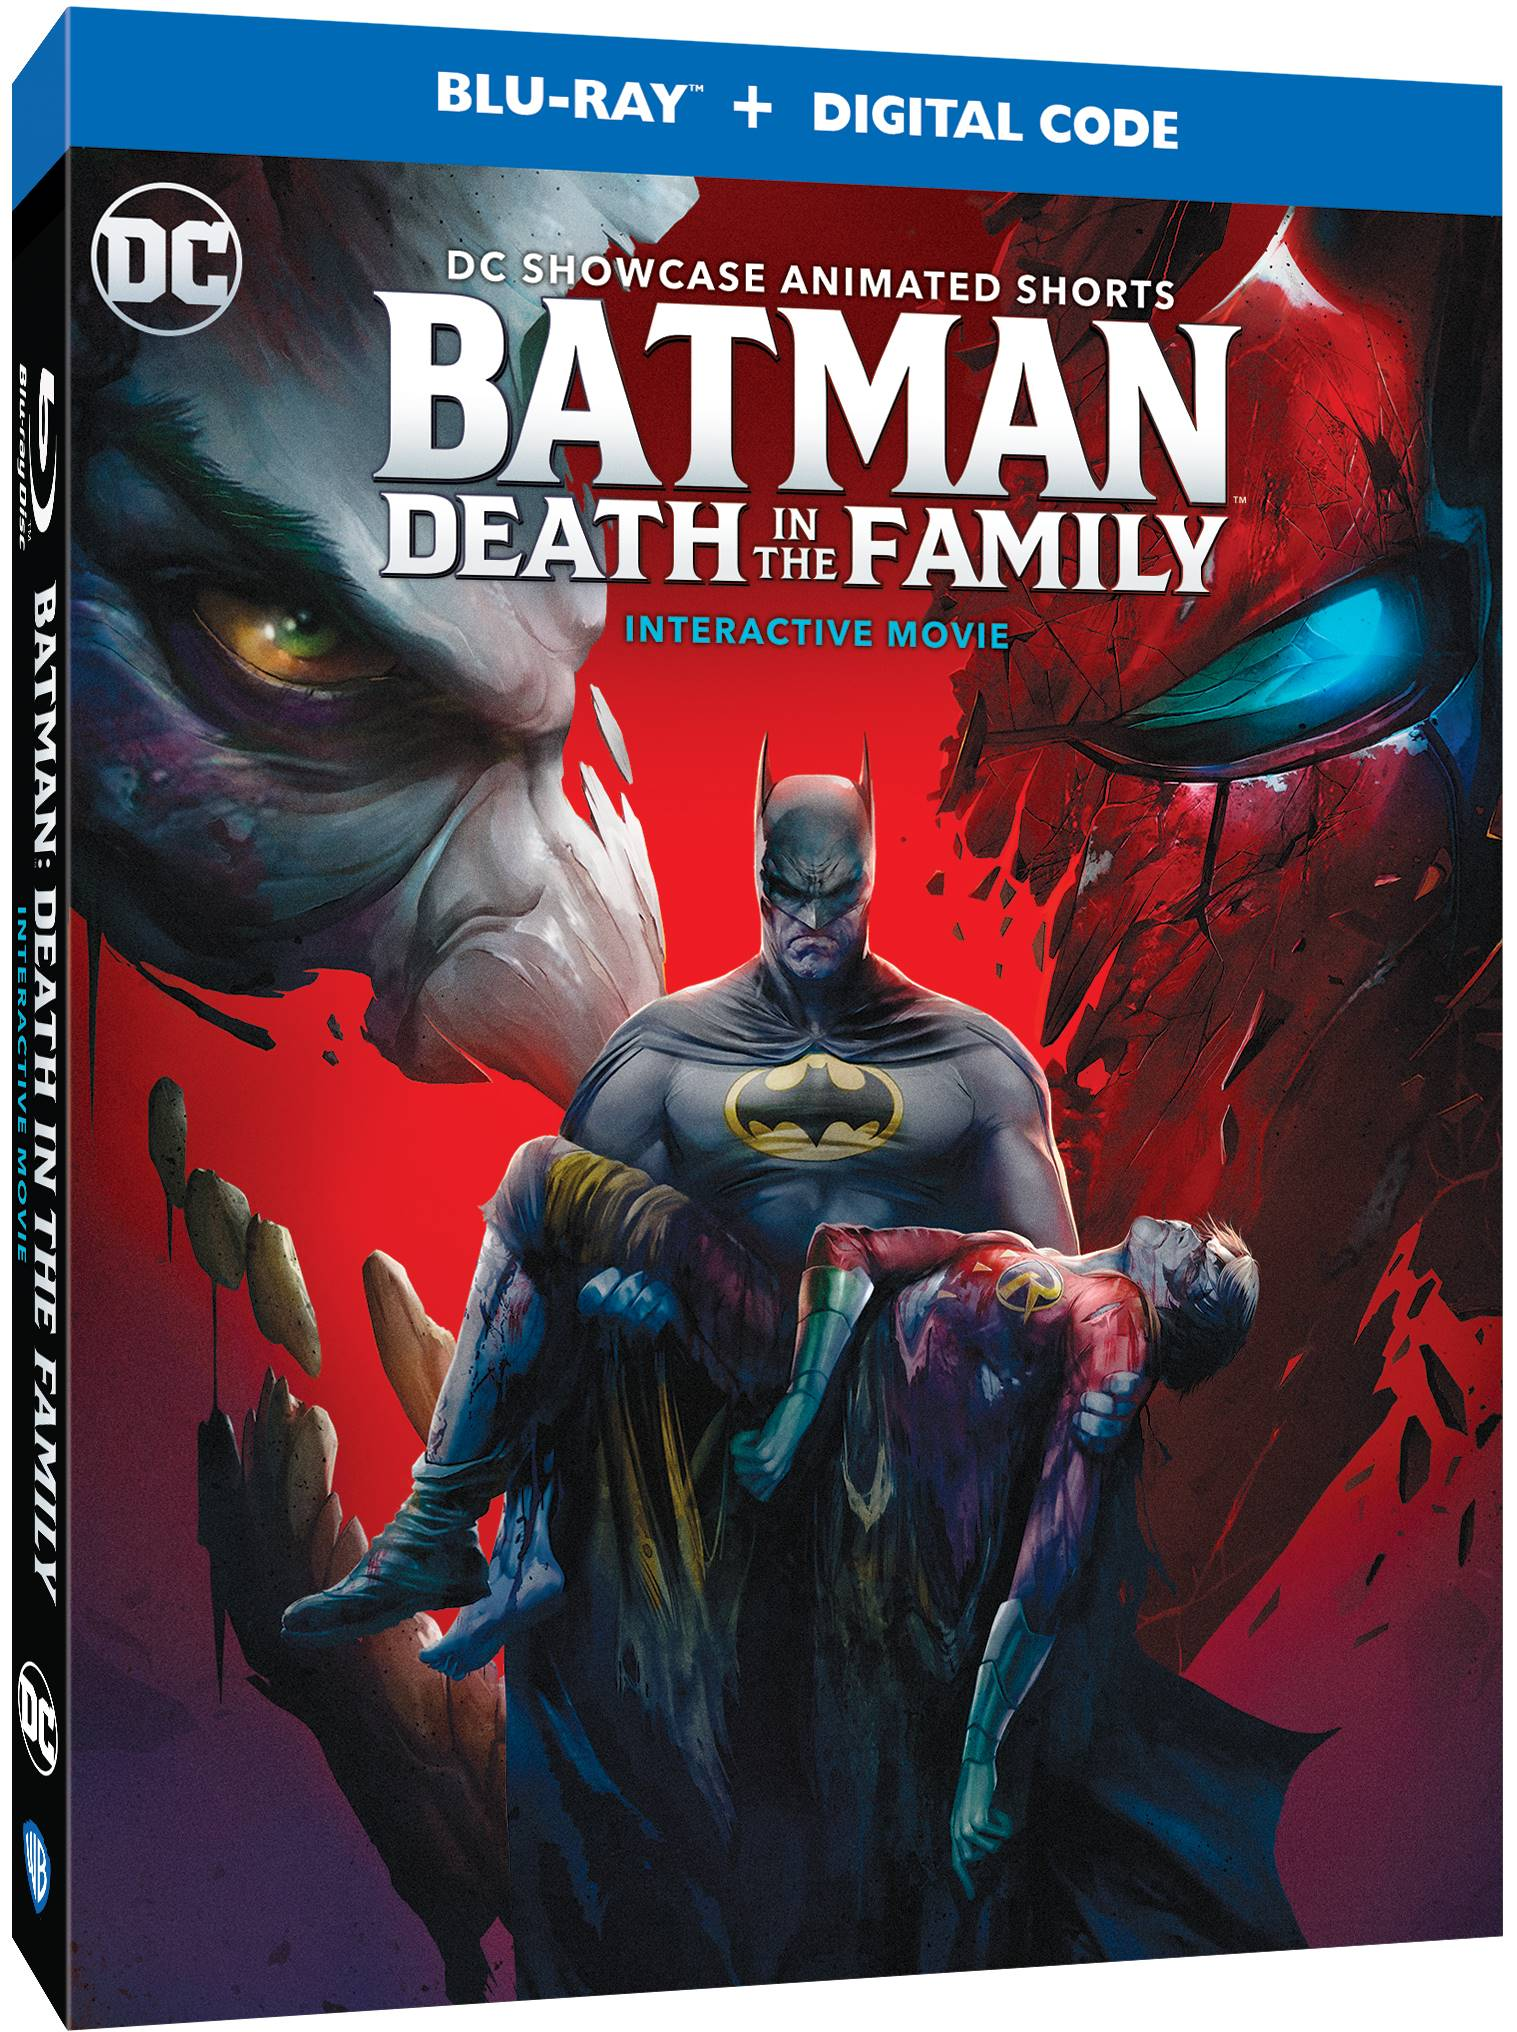 DC Showcase - Batman: Death in the Family review